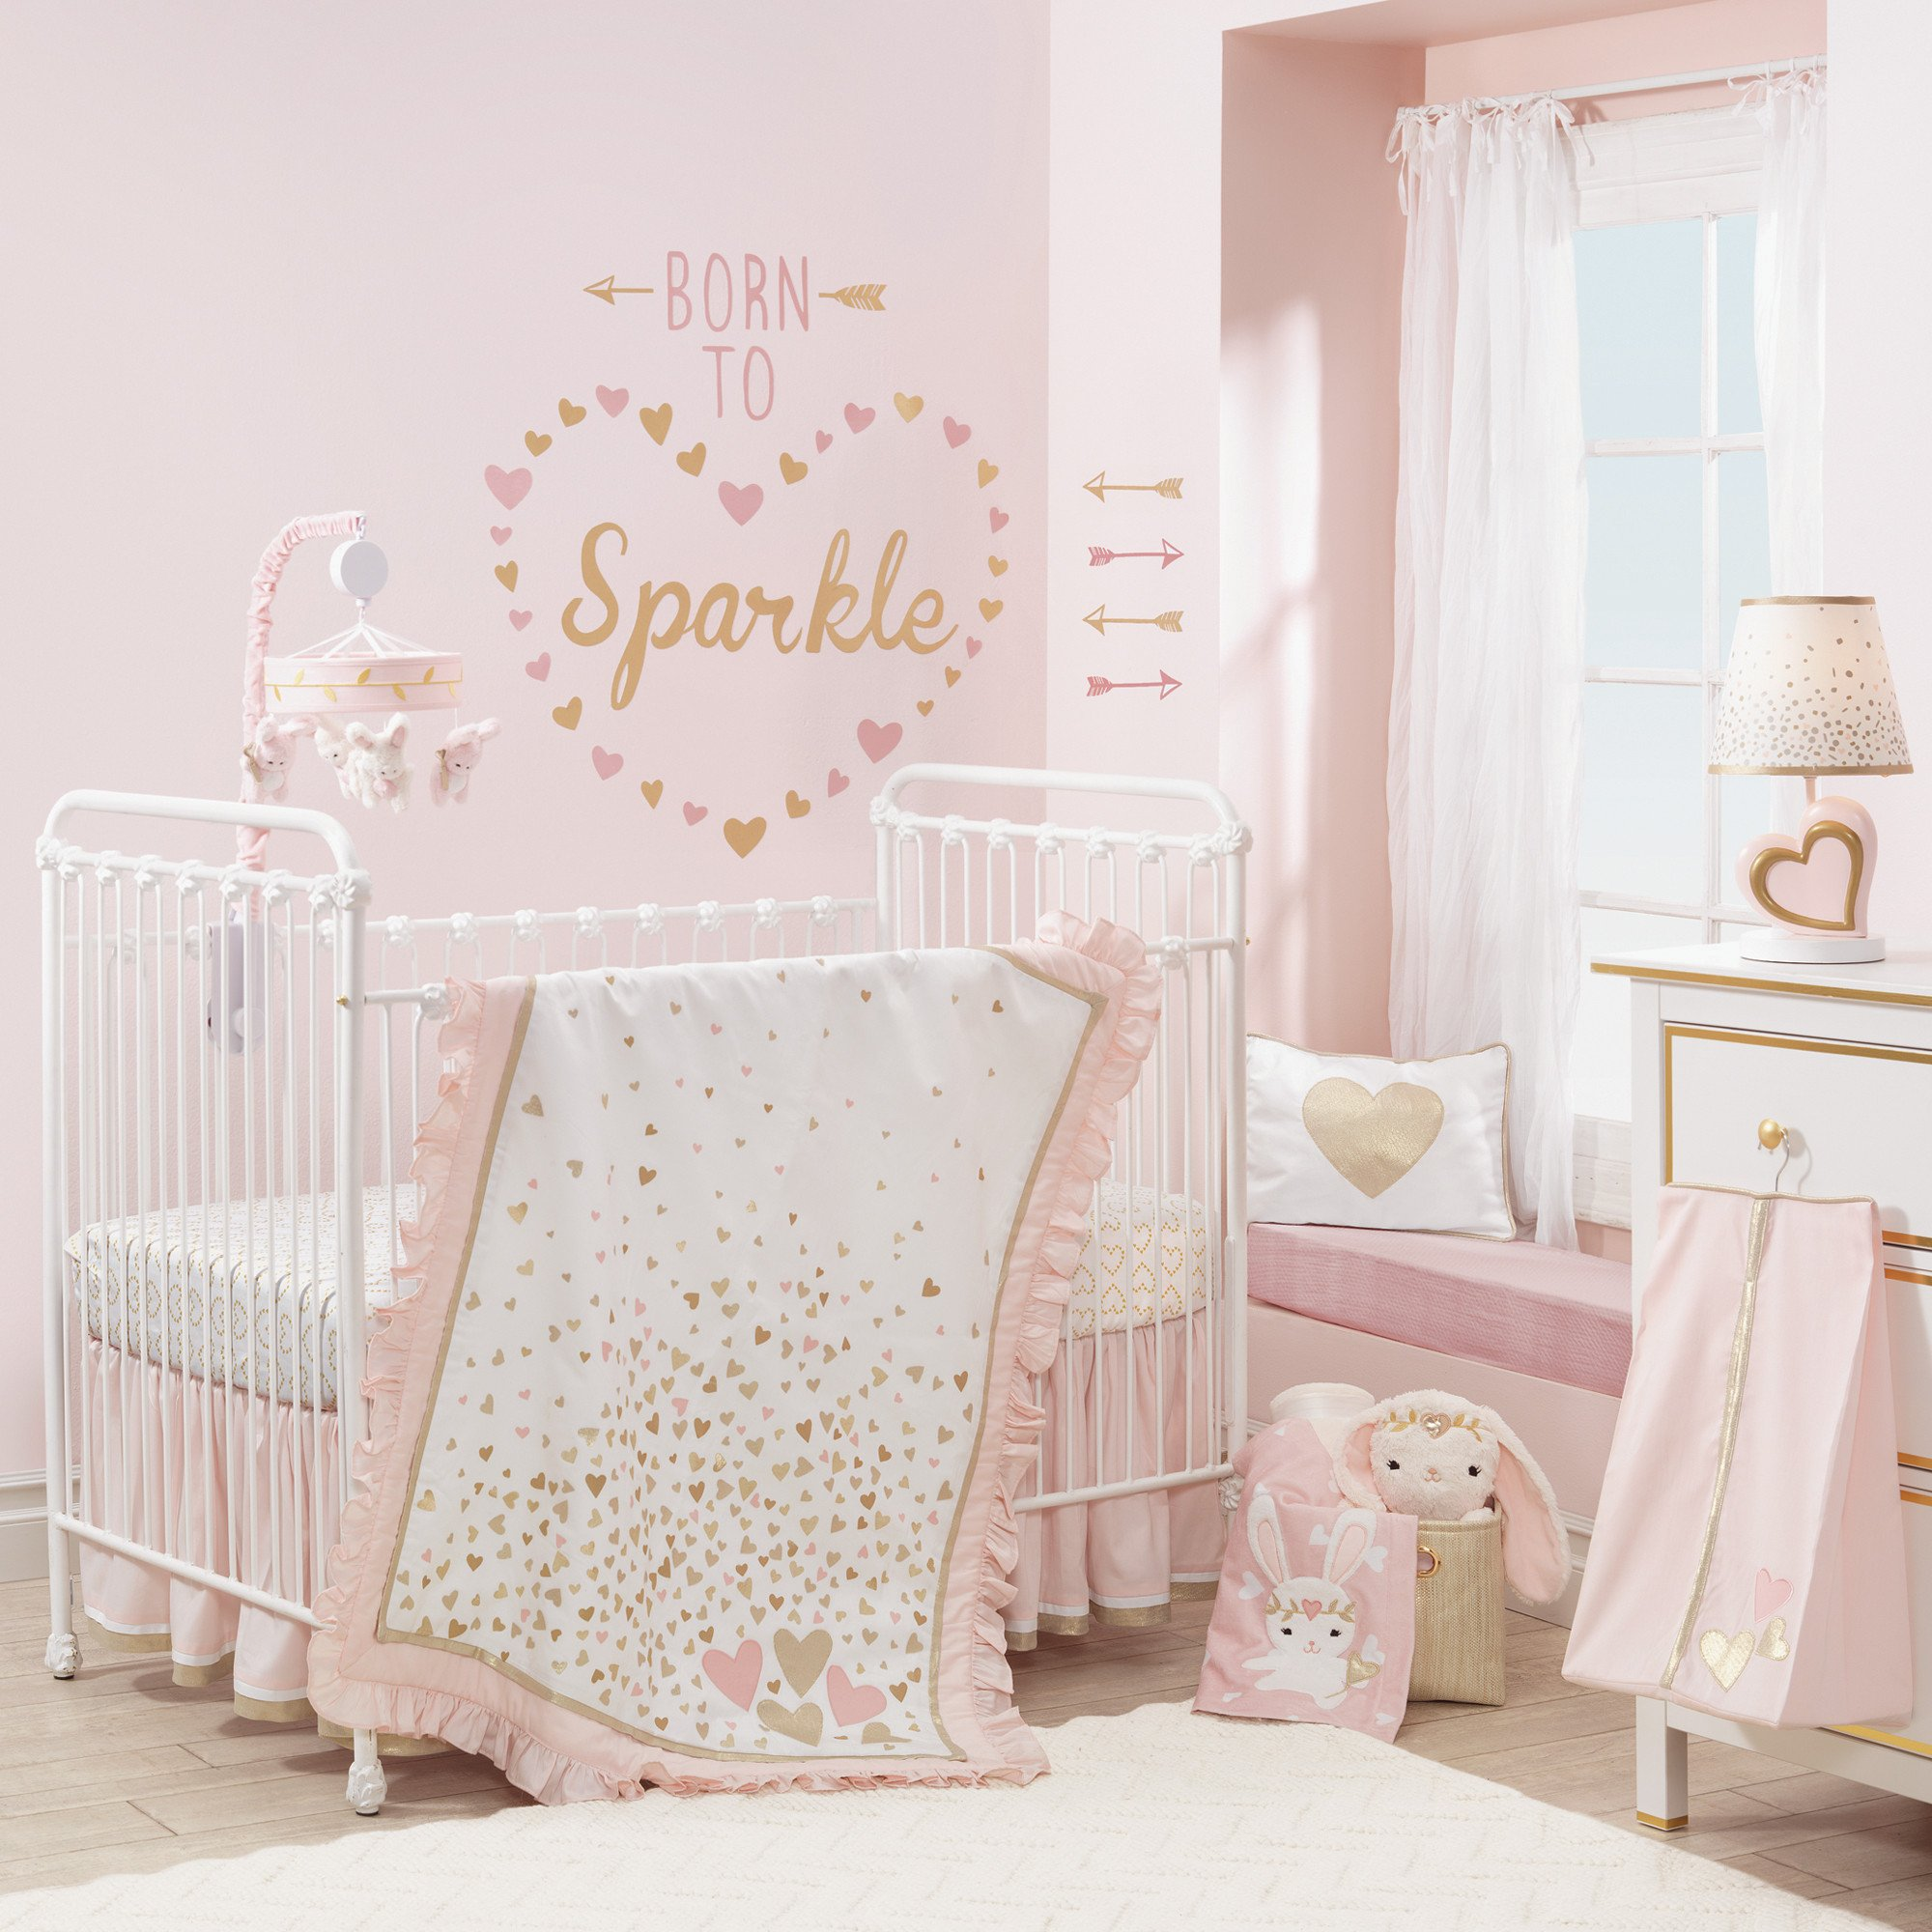 Lambs Amp Ivy Confetti Wall Appliques Ideal Baby